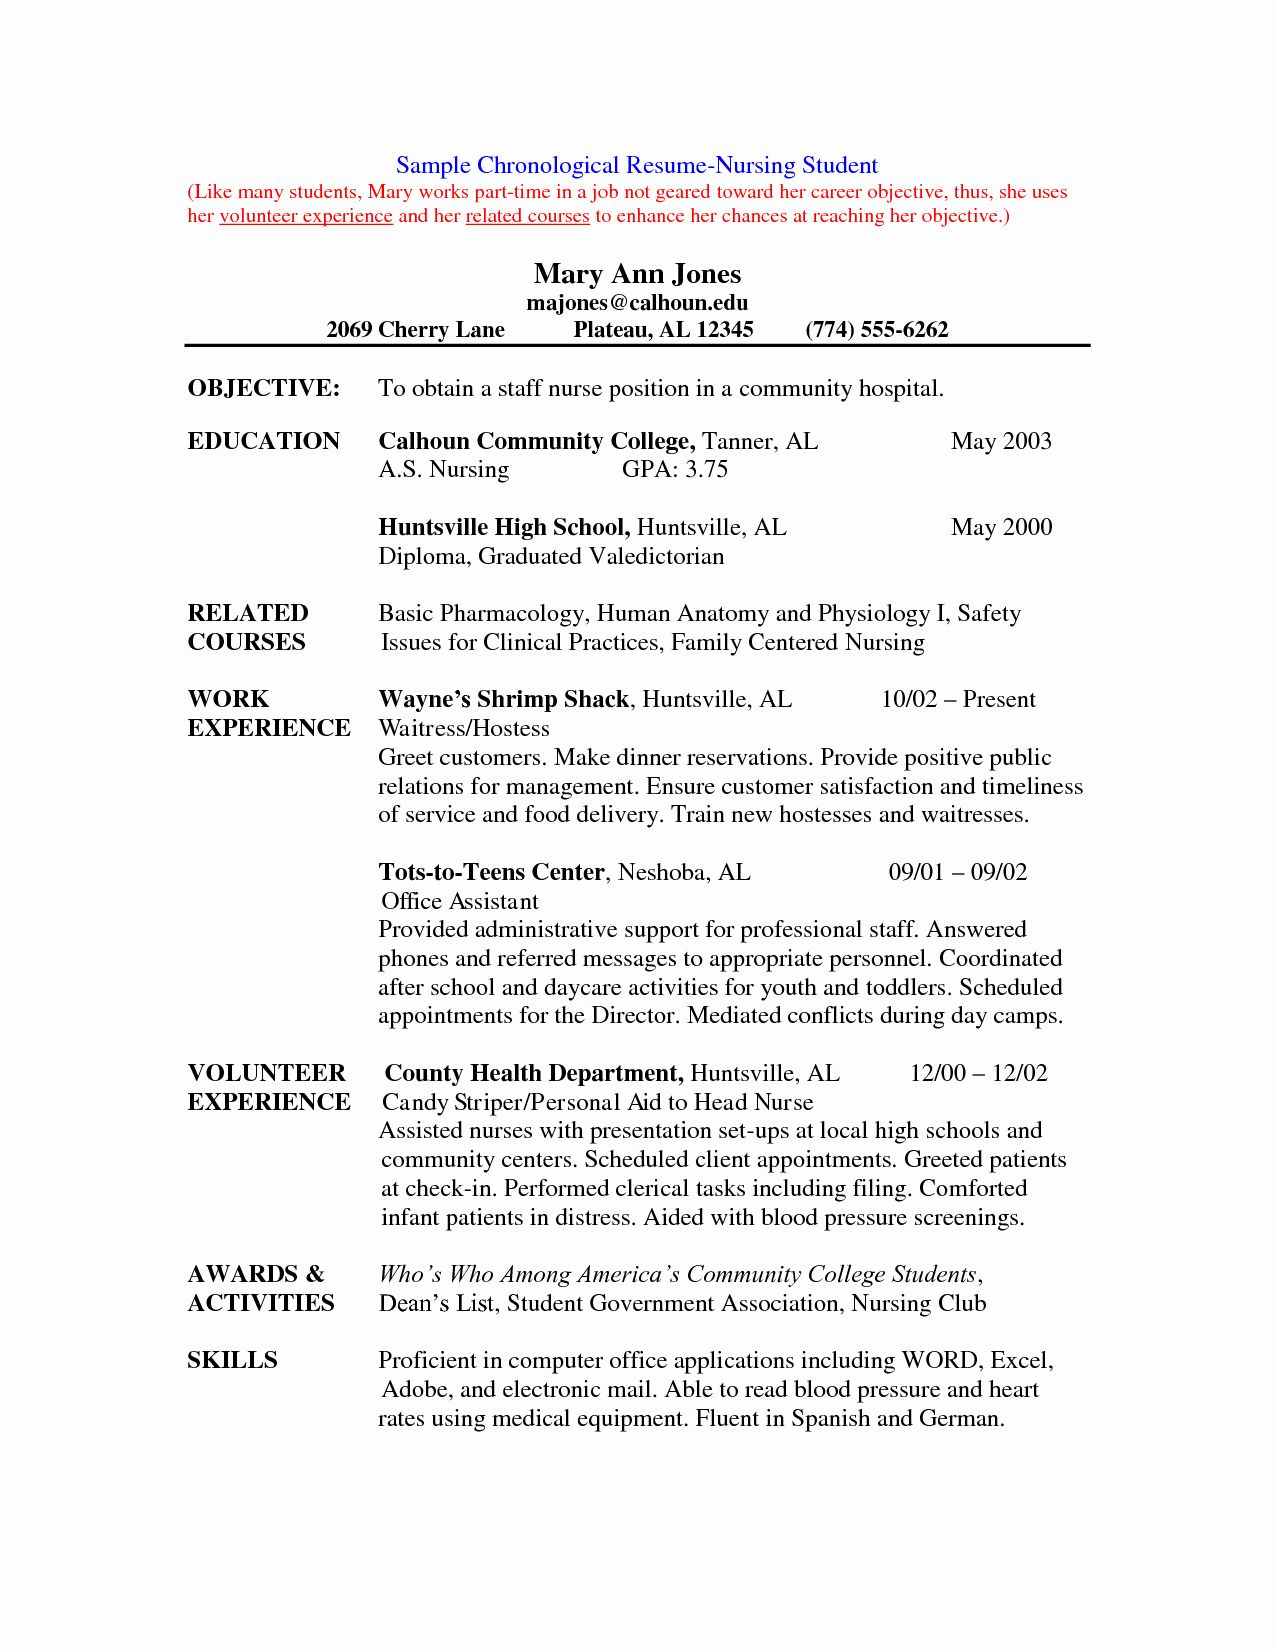 25 Nursing Student Resume Examples In 2020 With Images Student Nurse Resume Student Resume Template Student Resume